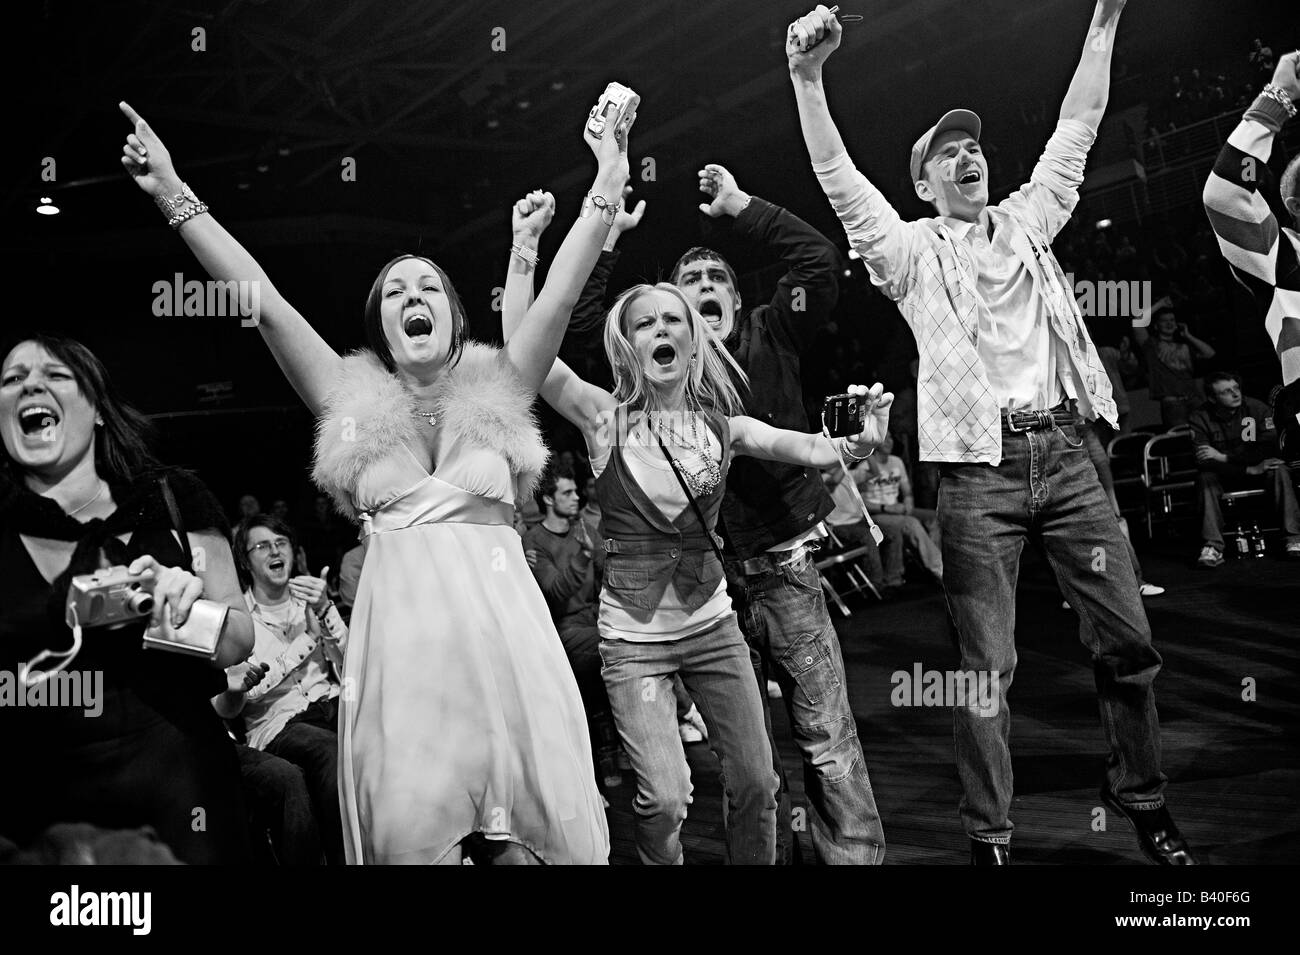 Fans celabrate during MMA Fight, Cage fight. - Stock Image